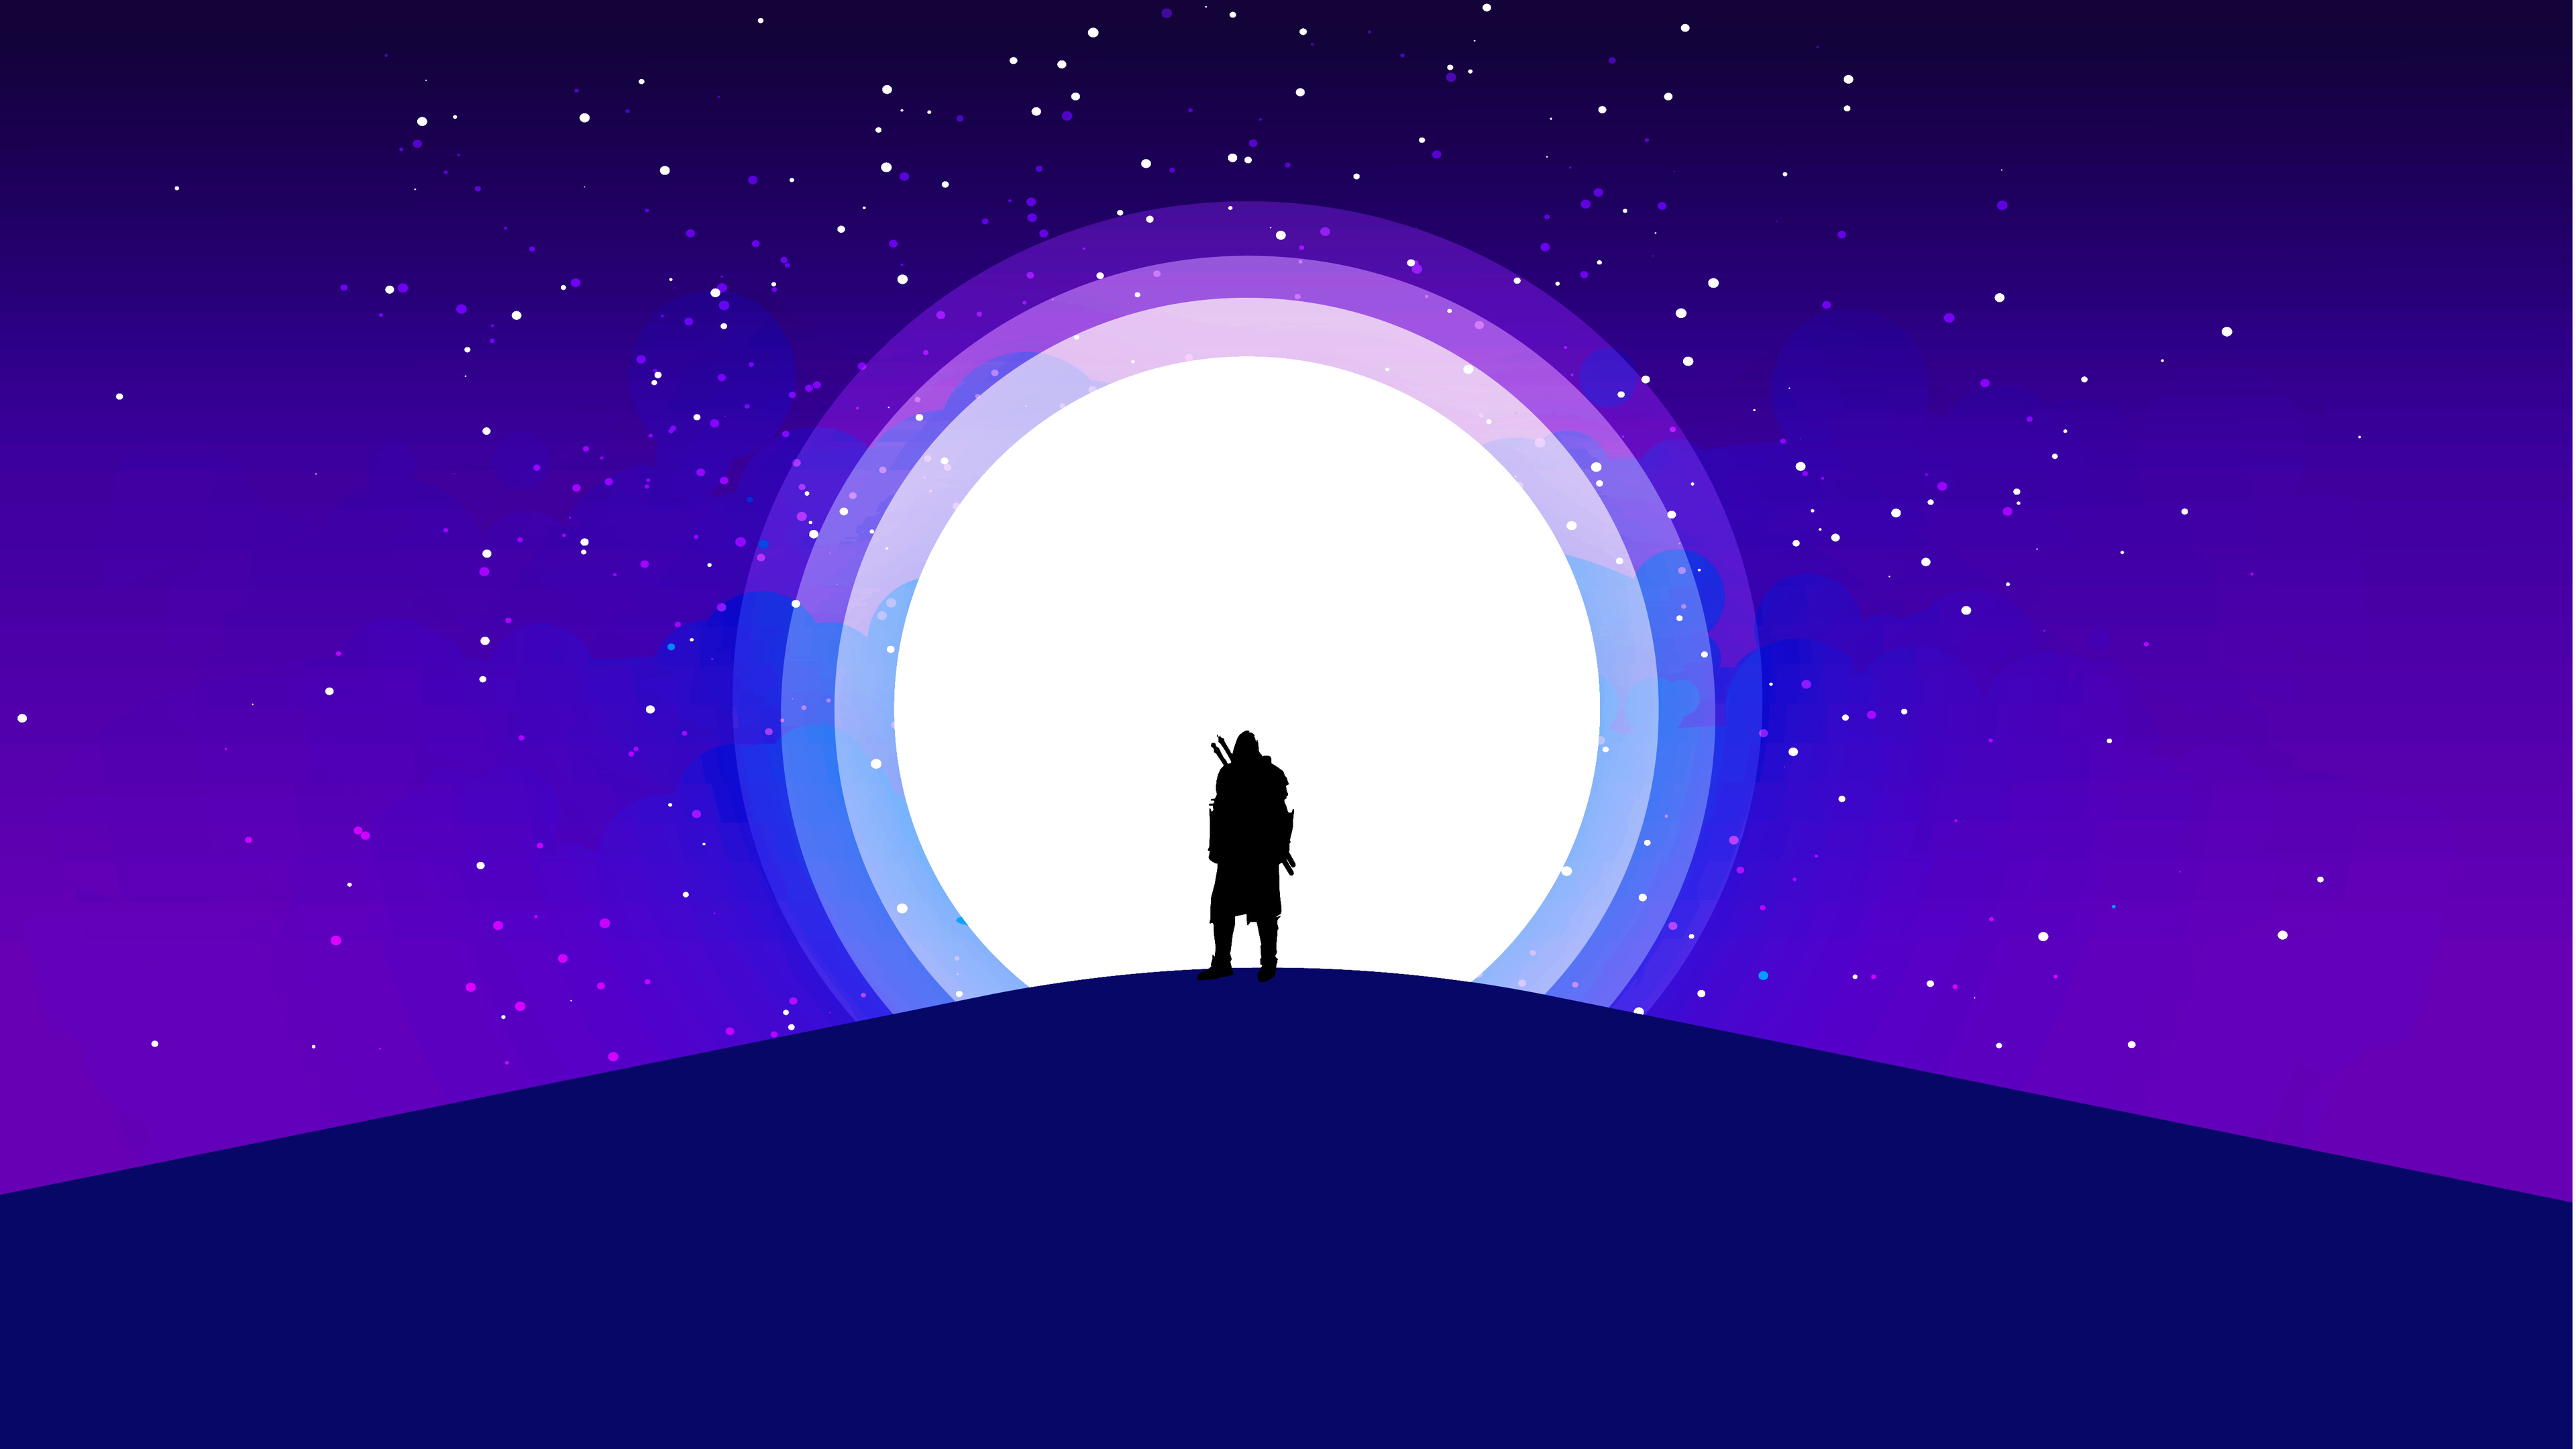 Wallpaper 4k Moon Warrior Purple Sky 4k 4k Wallpapers